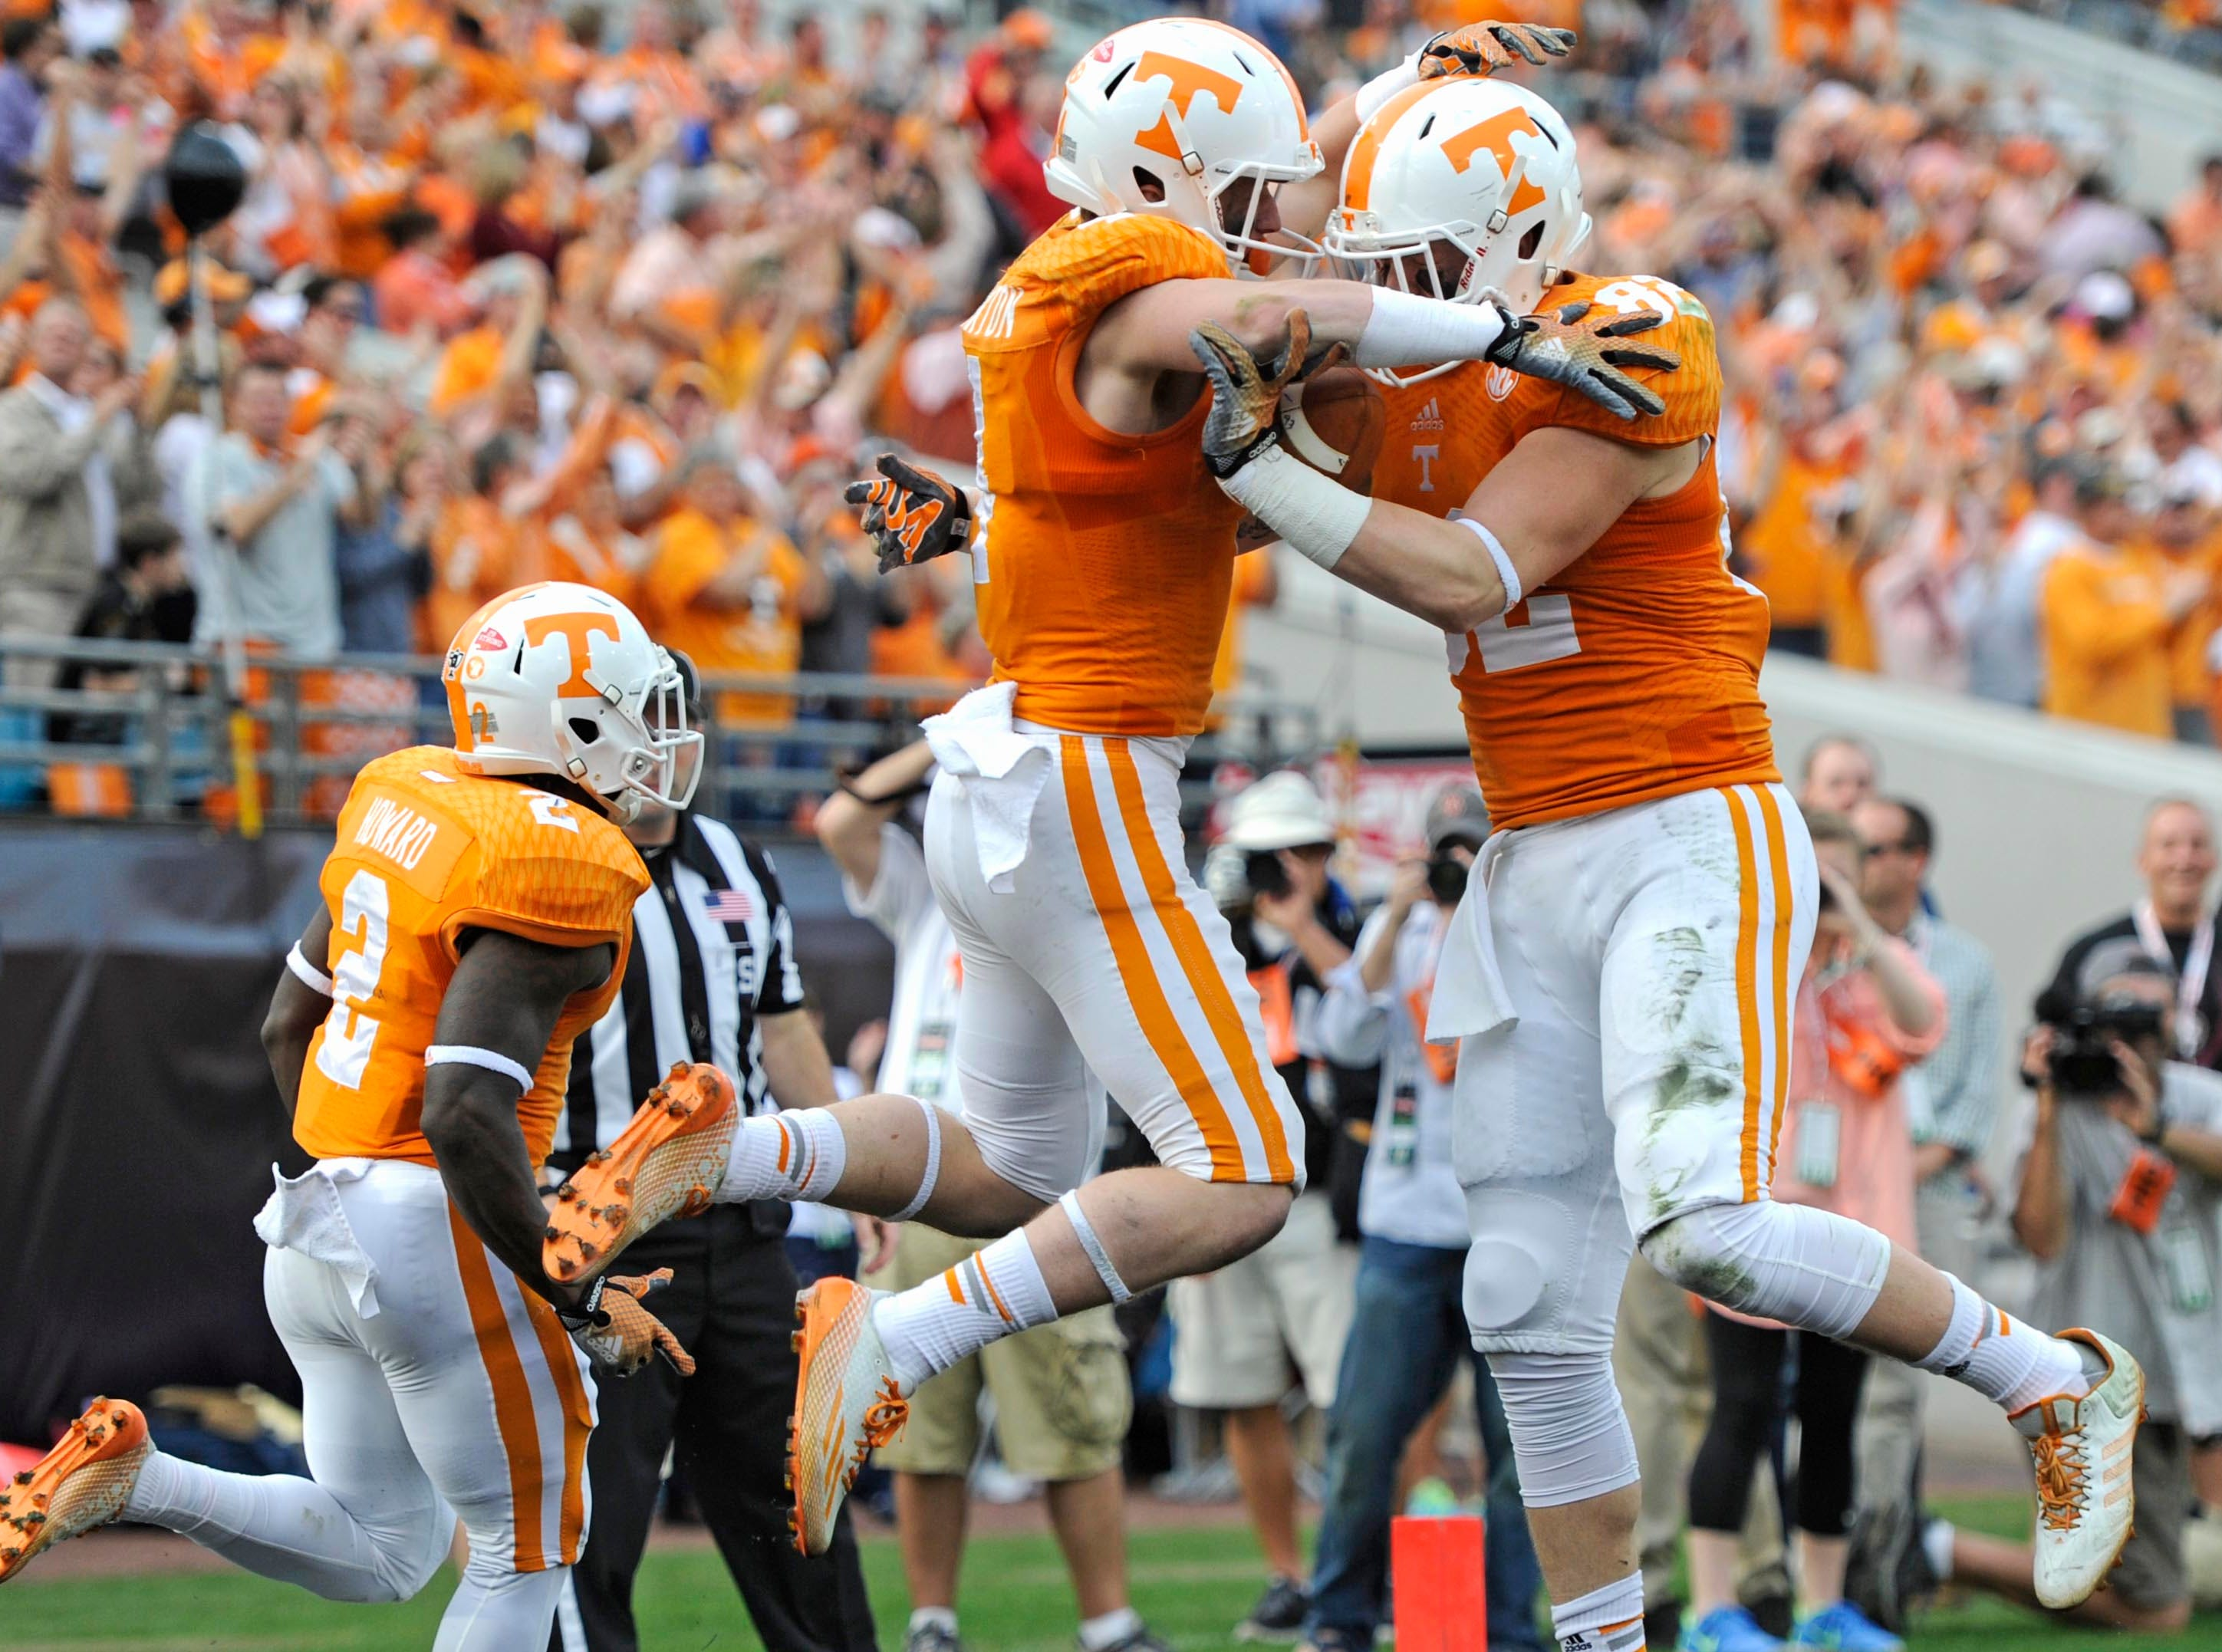 Tennessee wide receiver Vic Wharton (4), center, and Tennessee tight end Ethan Wolf (82), right, celebrate after Wharton scored a touchdown against Iowa during the first half of the TaxSlayer Bowl at EverBank Field on Friday, Jan. 2, 2015 in Jacksonville, Fla.